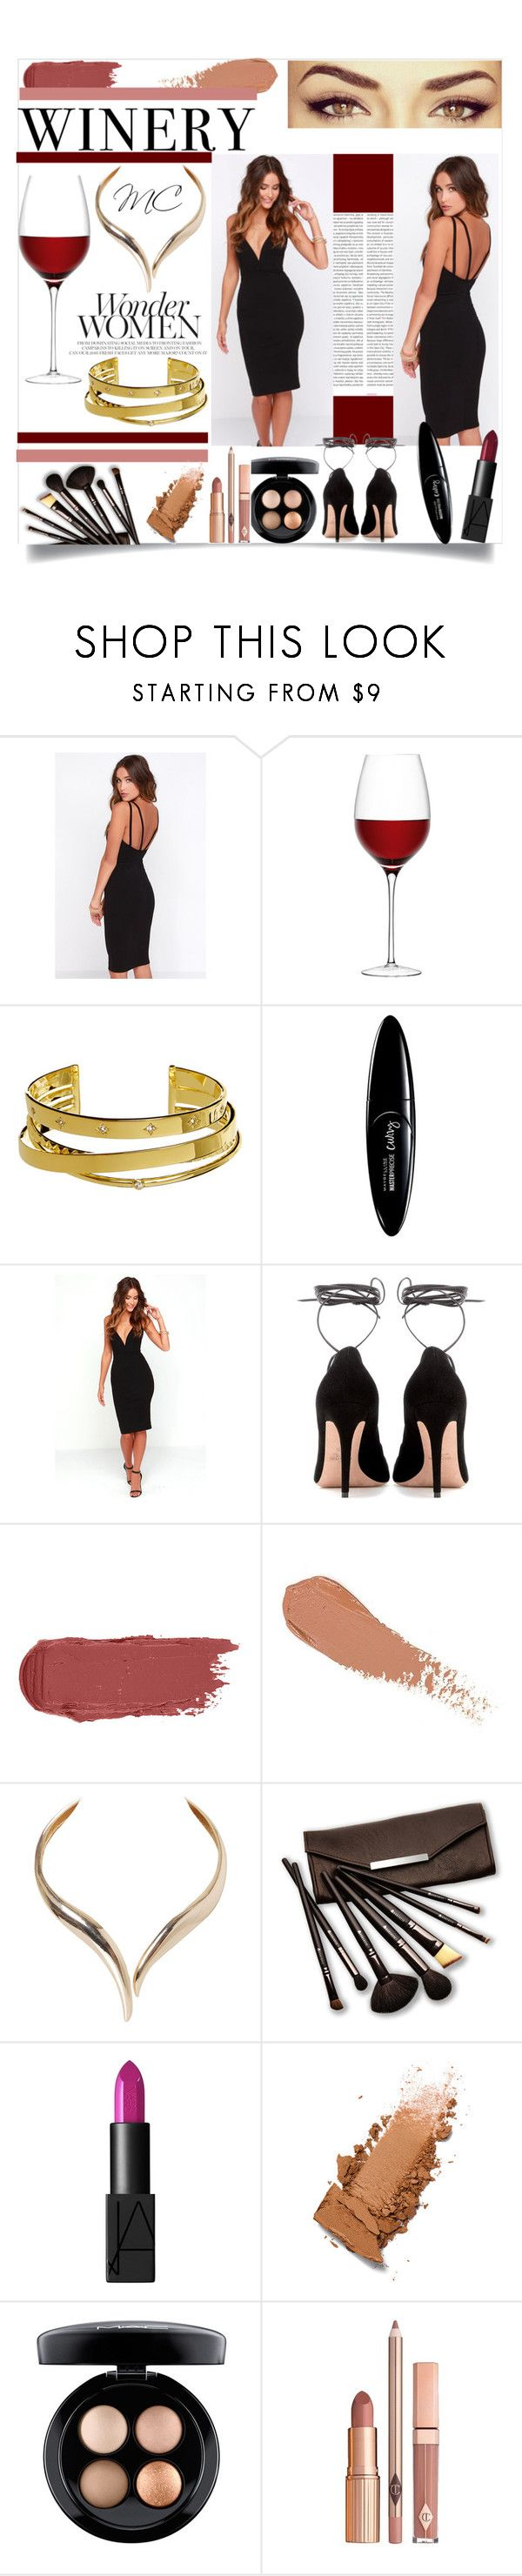 """Wedding guest"" by mc-divine ❤ liked on Polyvore featuring Oris, LULUS, ALDO, LSA International, Elizabeth and James, Maybelline, Valentino, Humble Chic, Borghese and NARS Cosmetics"